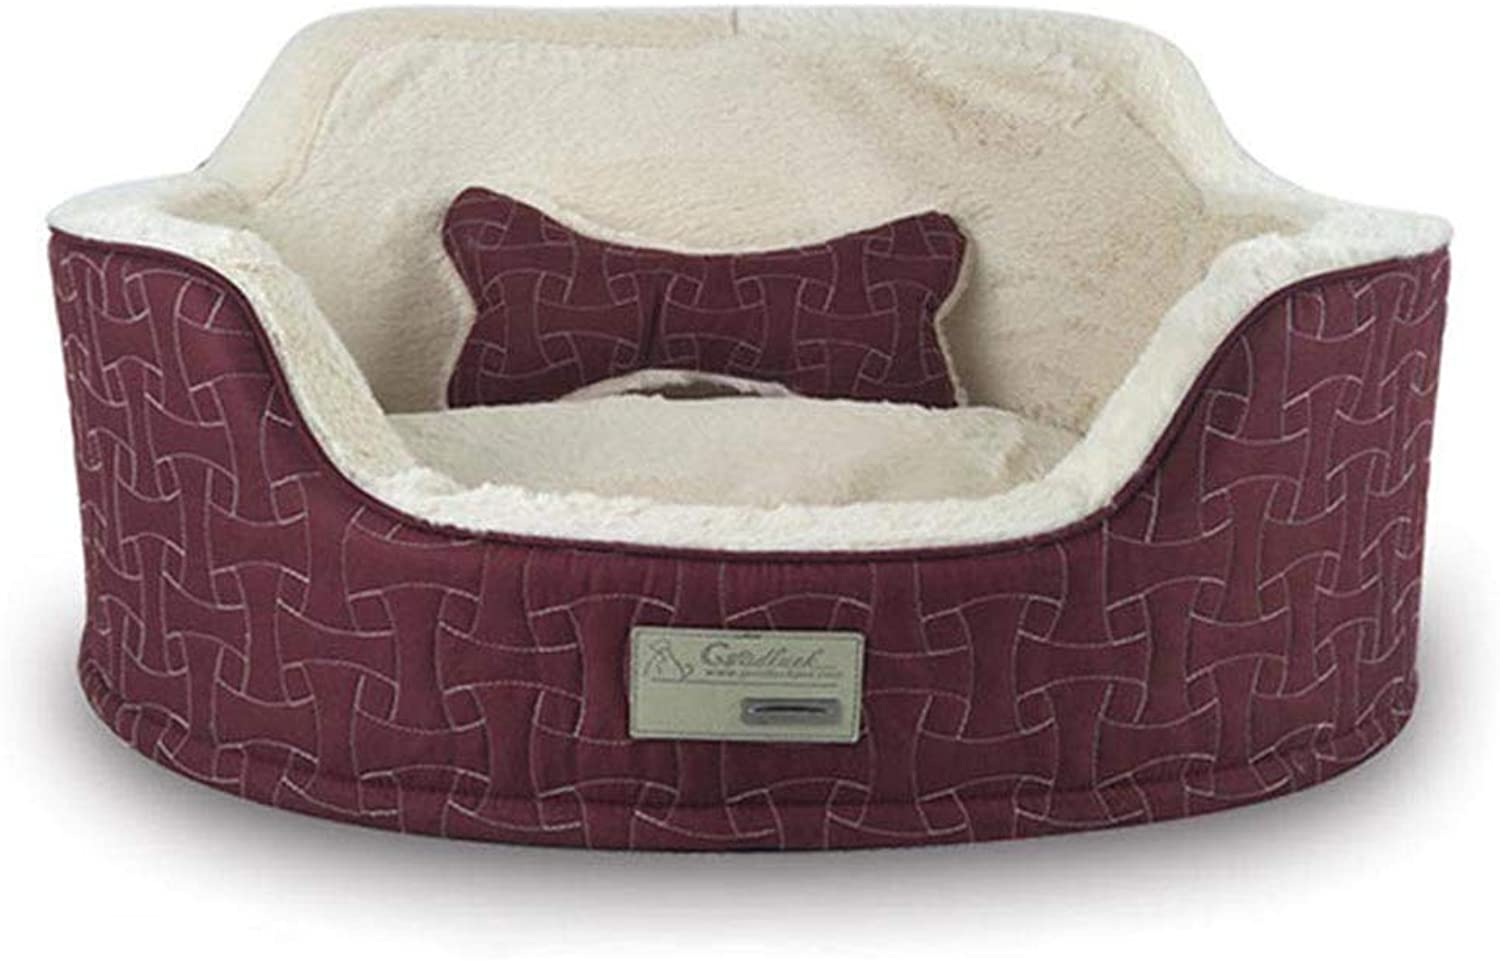 Cat Bed Kennel Soft Dog Mats Puppy Dog Bed Pet House Cozy Nest Kitten Pad Thick Warm Pet Cushion Autumn&Winter 65  50  23Cm